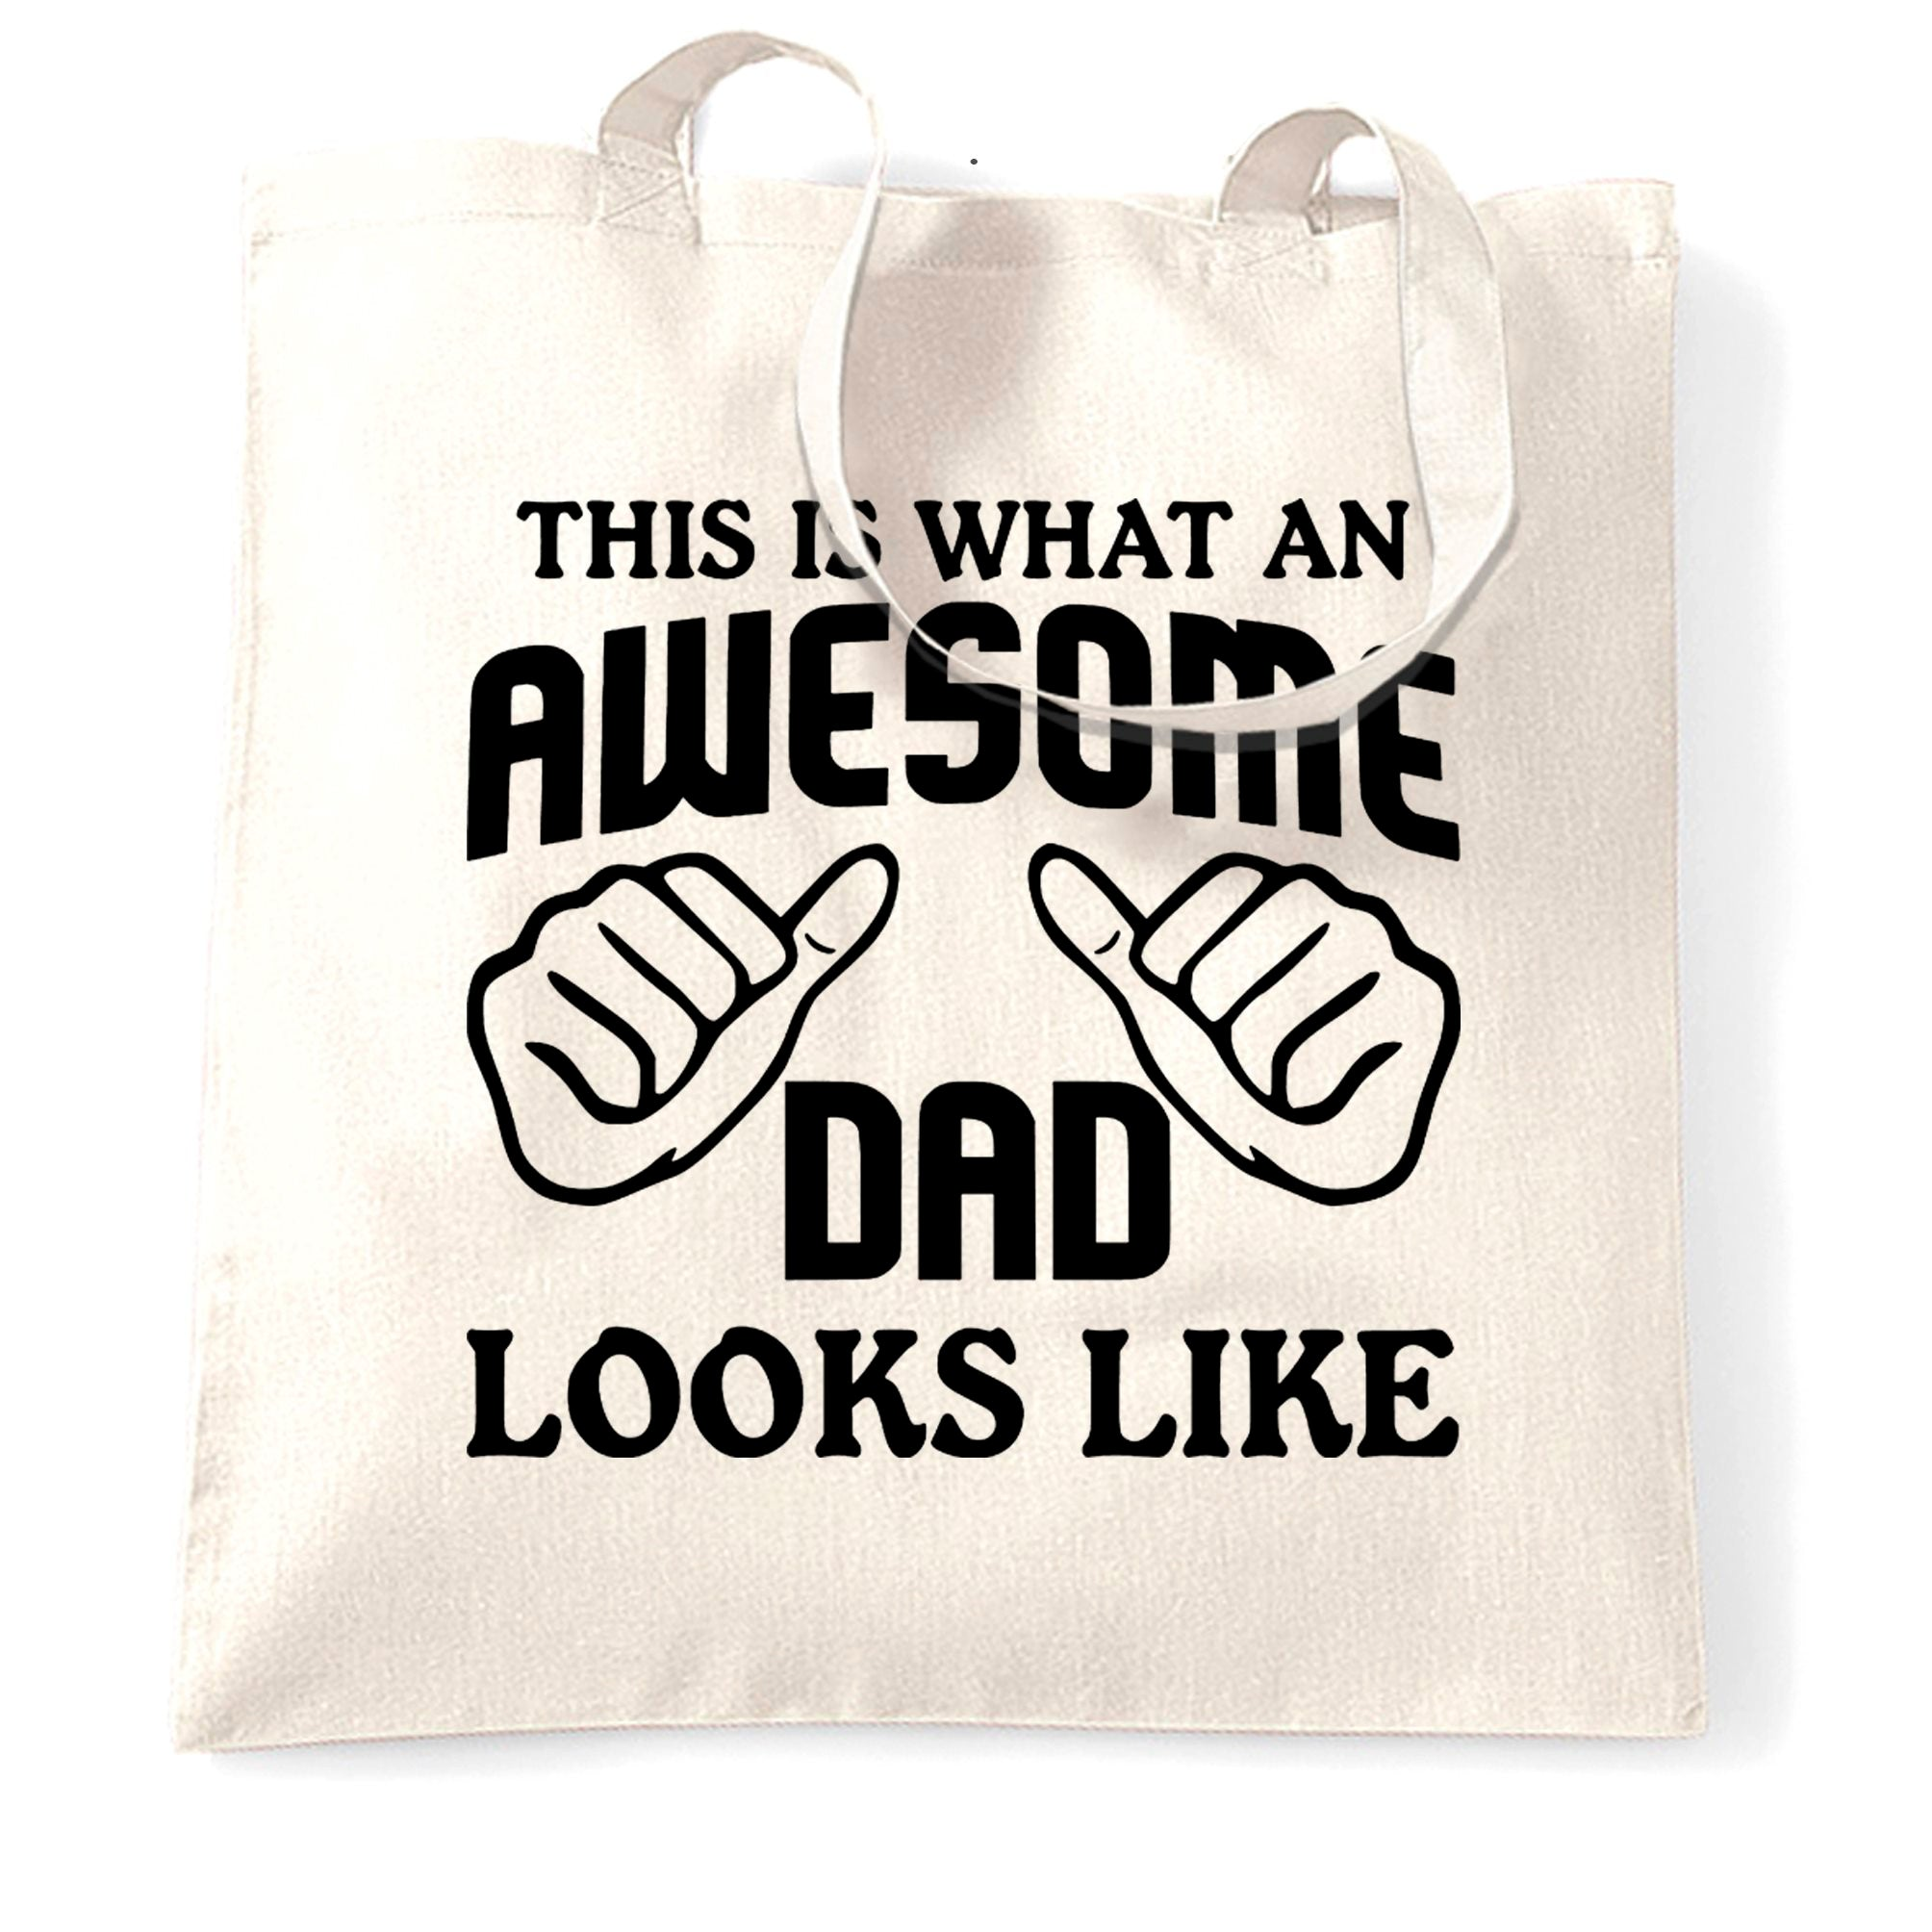 What An Awesome Dad Looks Like Tote Bag